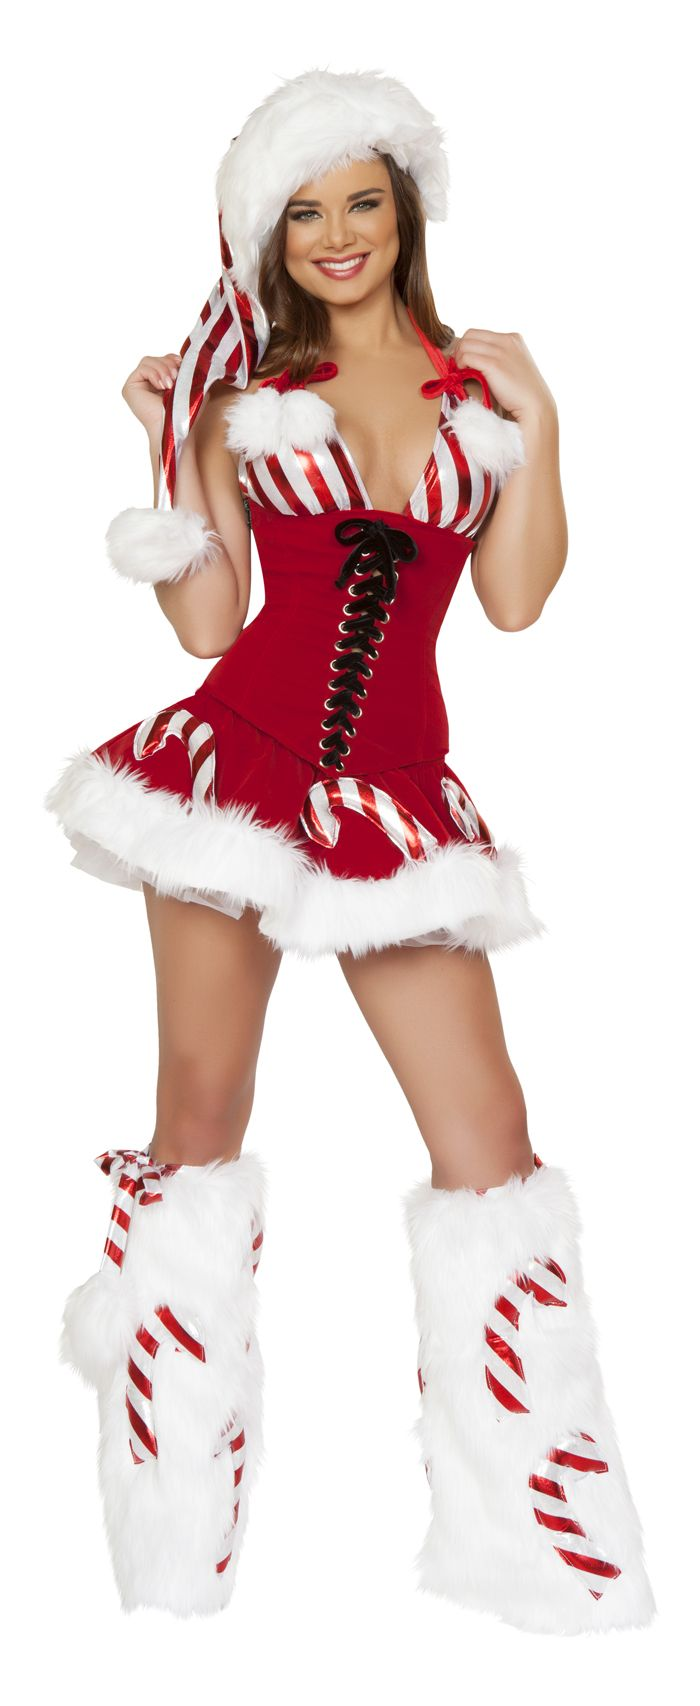 29 best images about XMAS Outfits on Pinterest | Christmas parties...